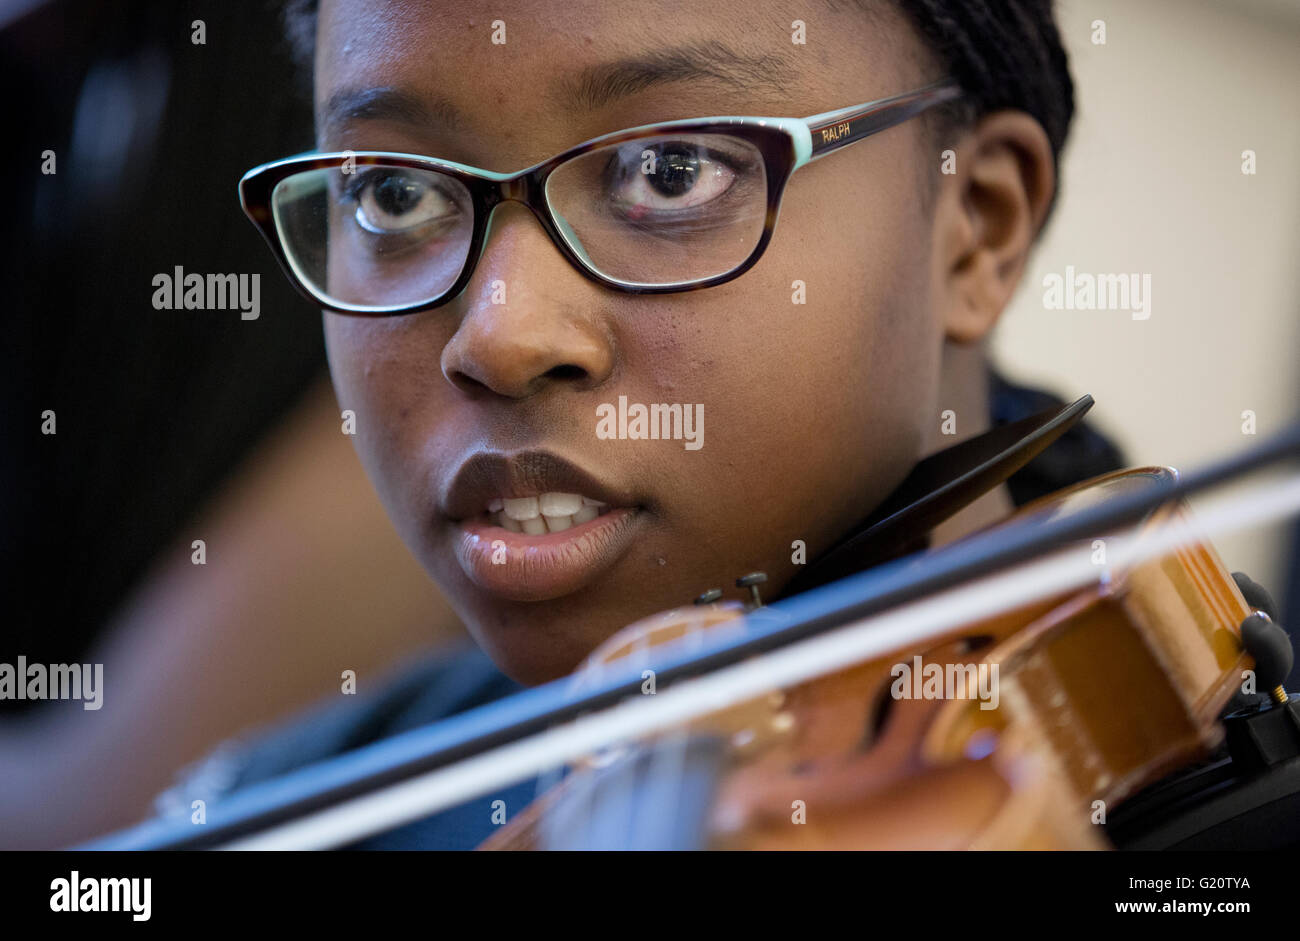 High School student orchestra - Stock Image